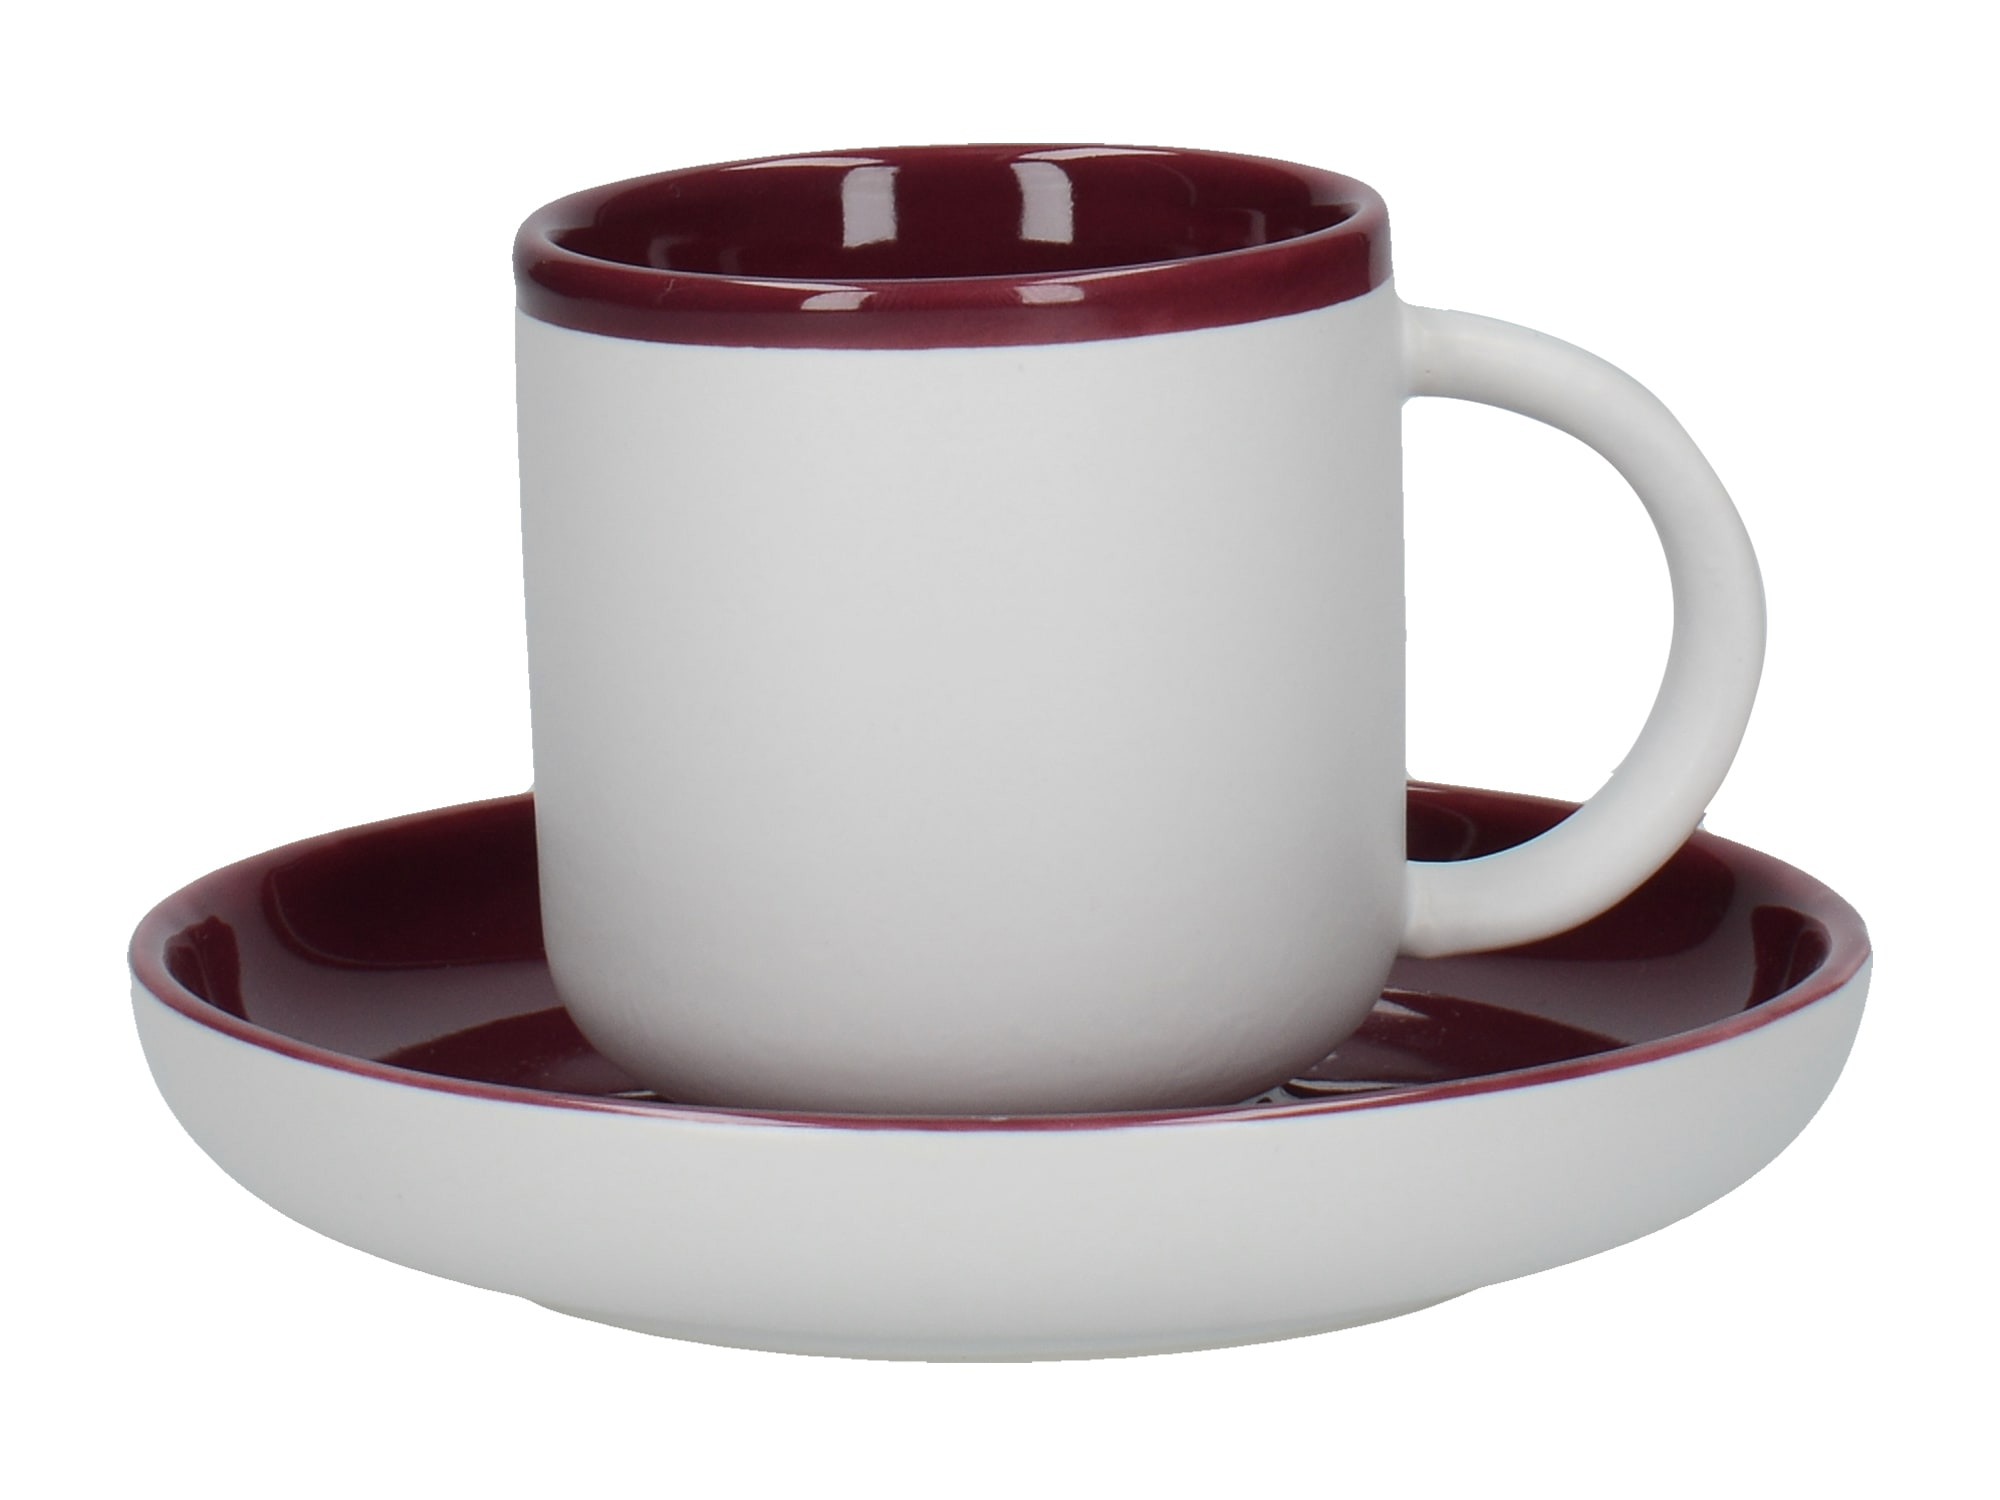 La Cafetiere Barcelona 130ml Espresso Cup And Saucer Plum